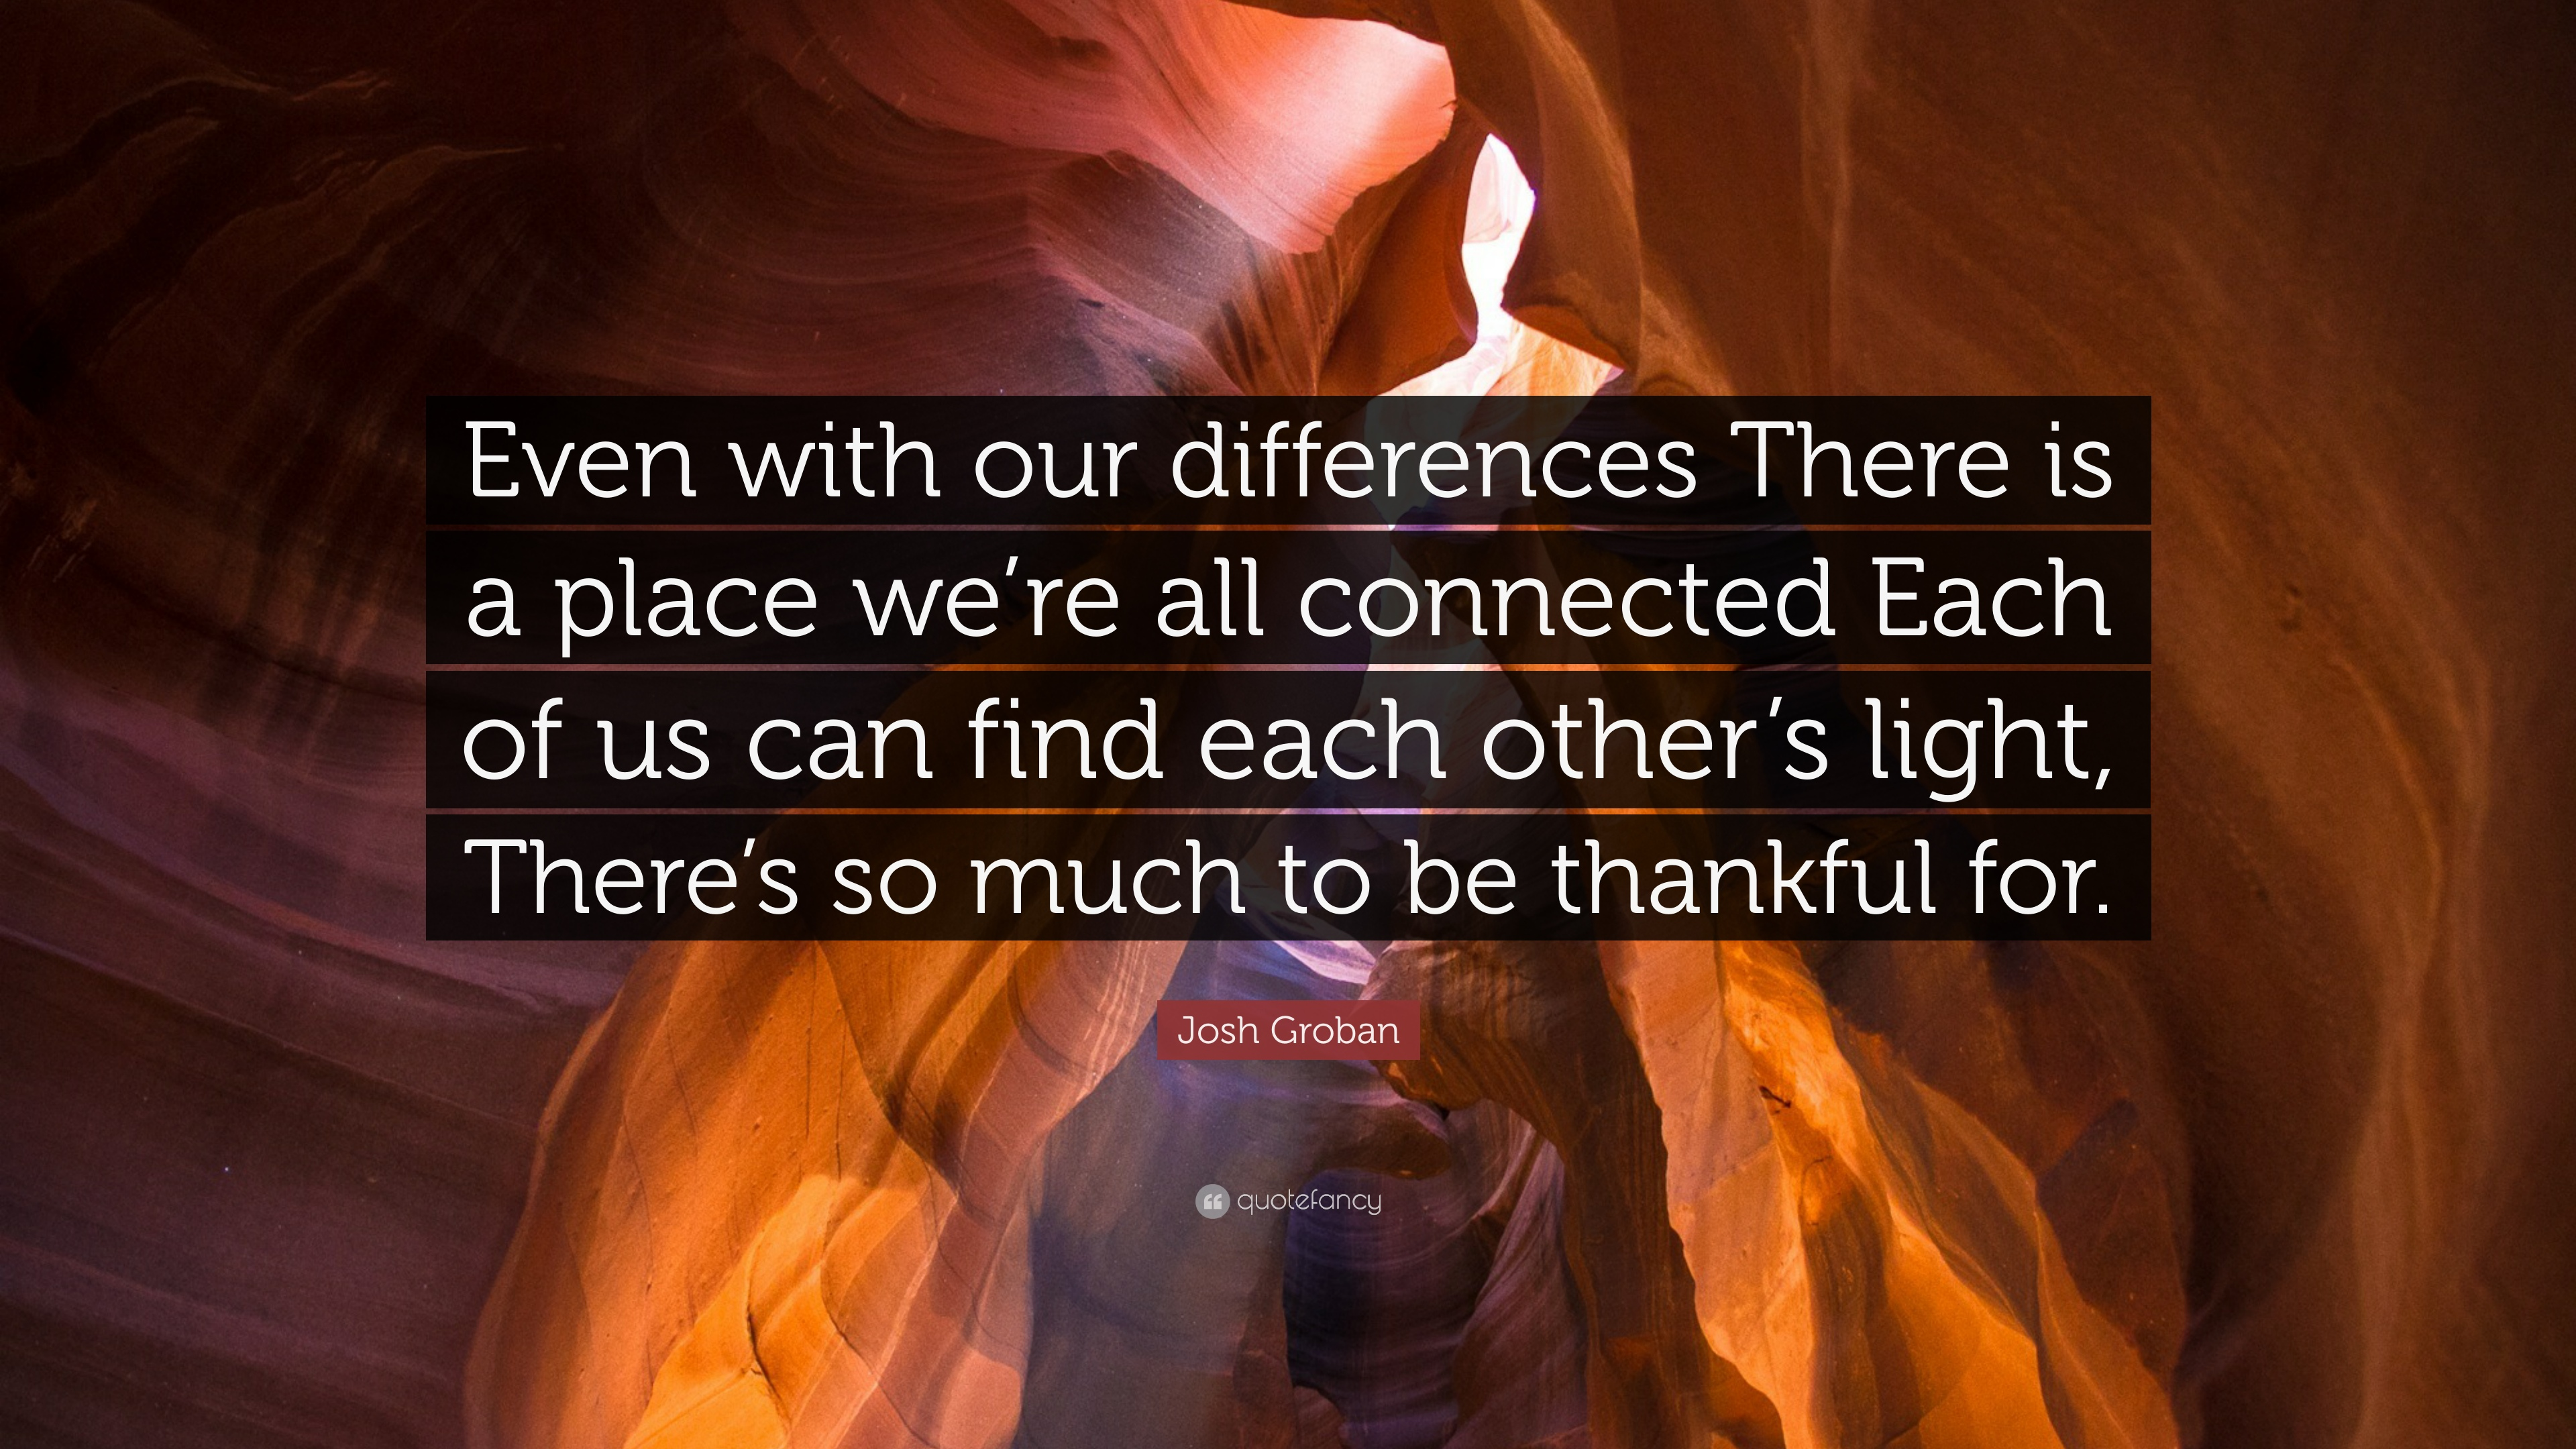 Josh Groban Quote Even With Our Differences There Is A Place Were